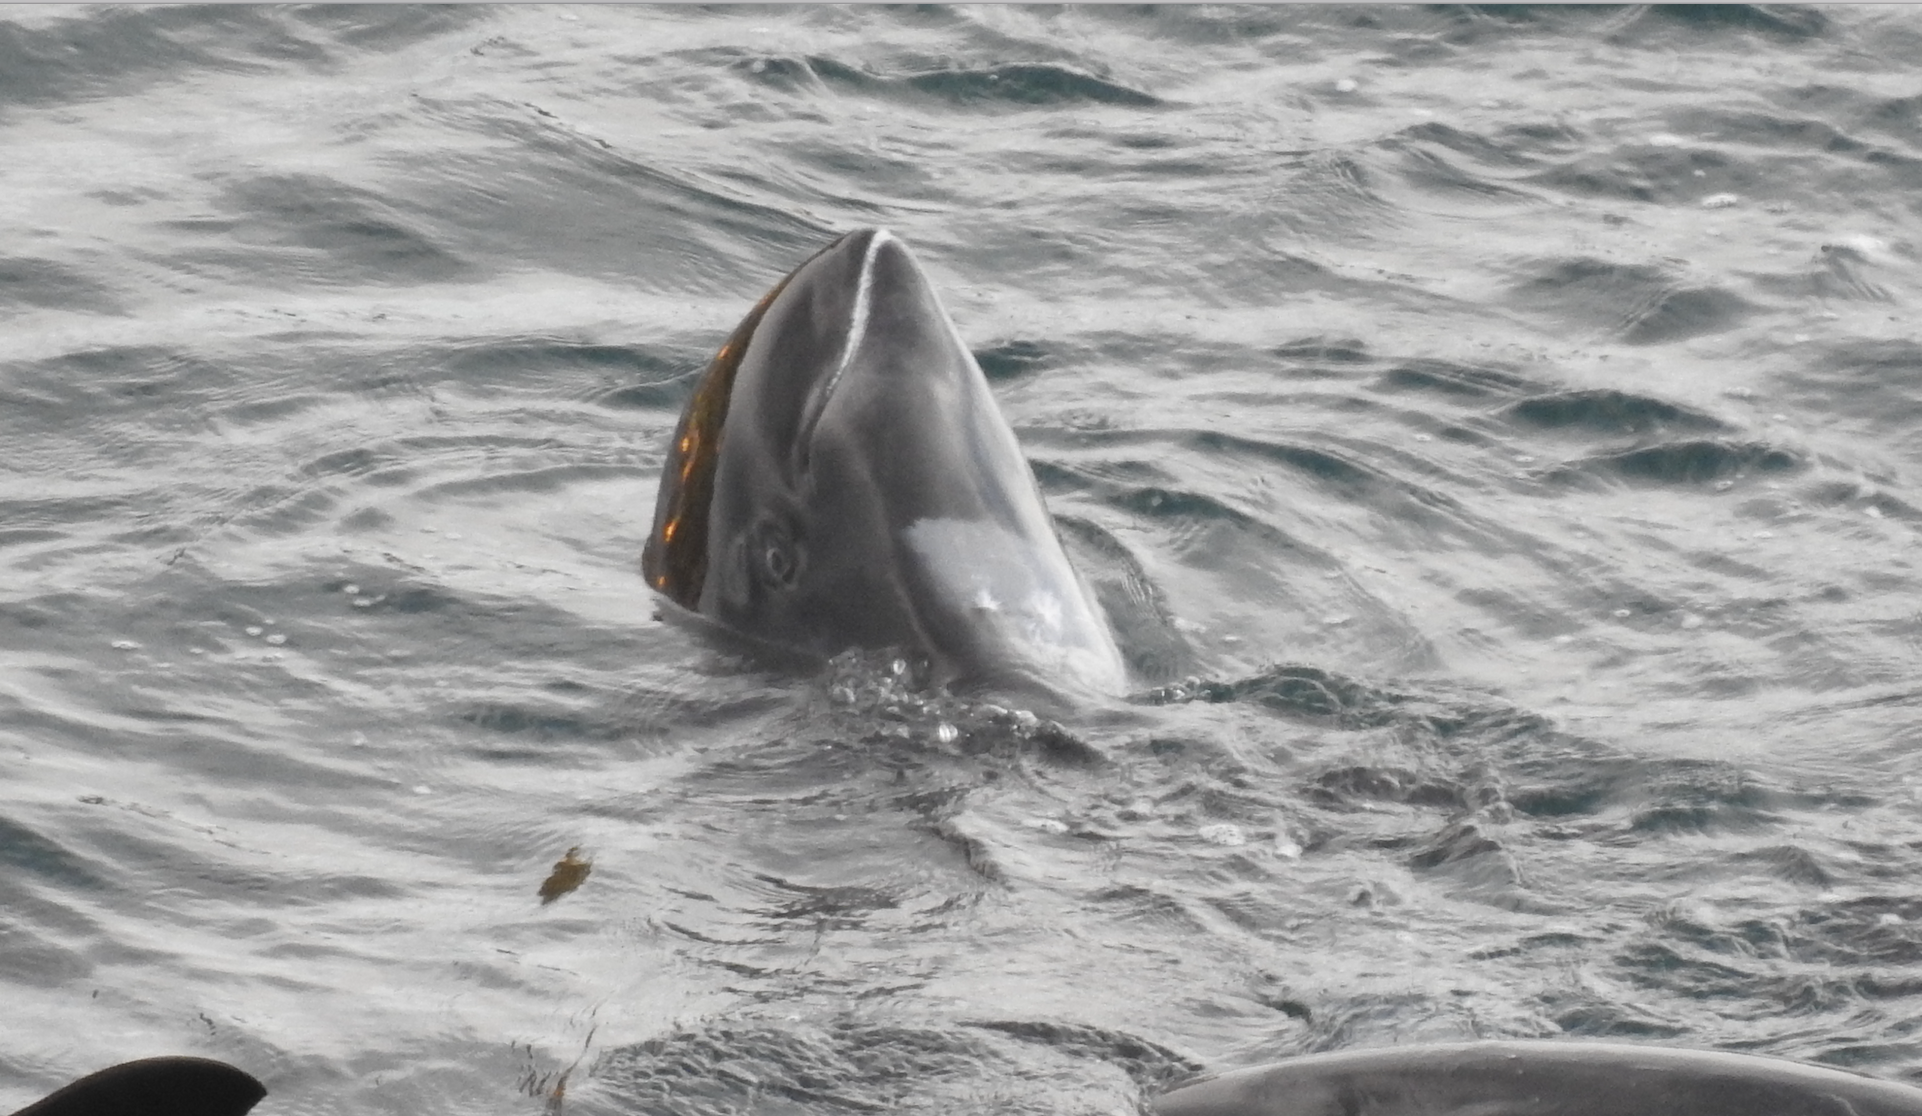 Melon-headed whale spyhops after being driven into the cove, Taiji, Japan.